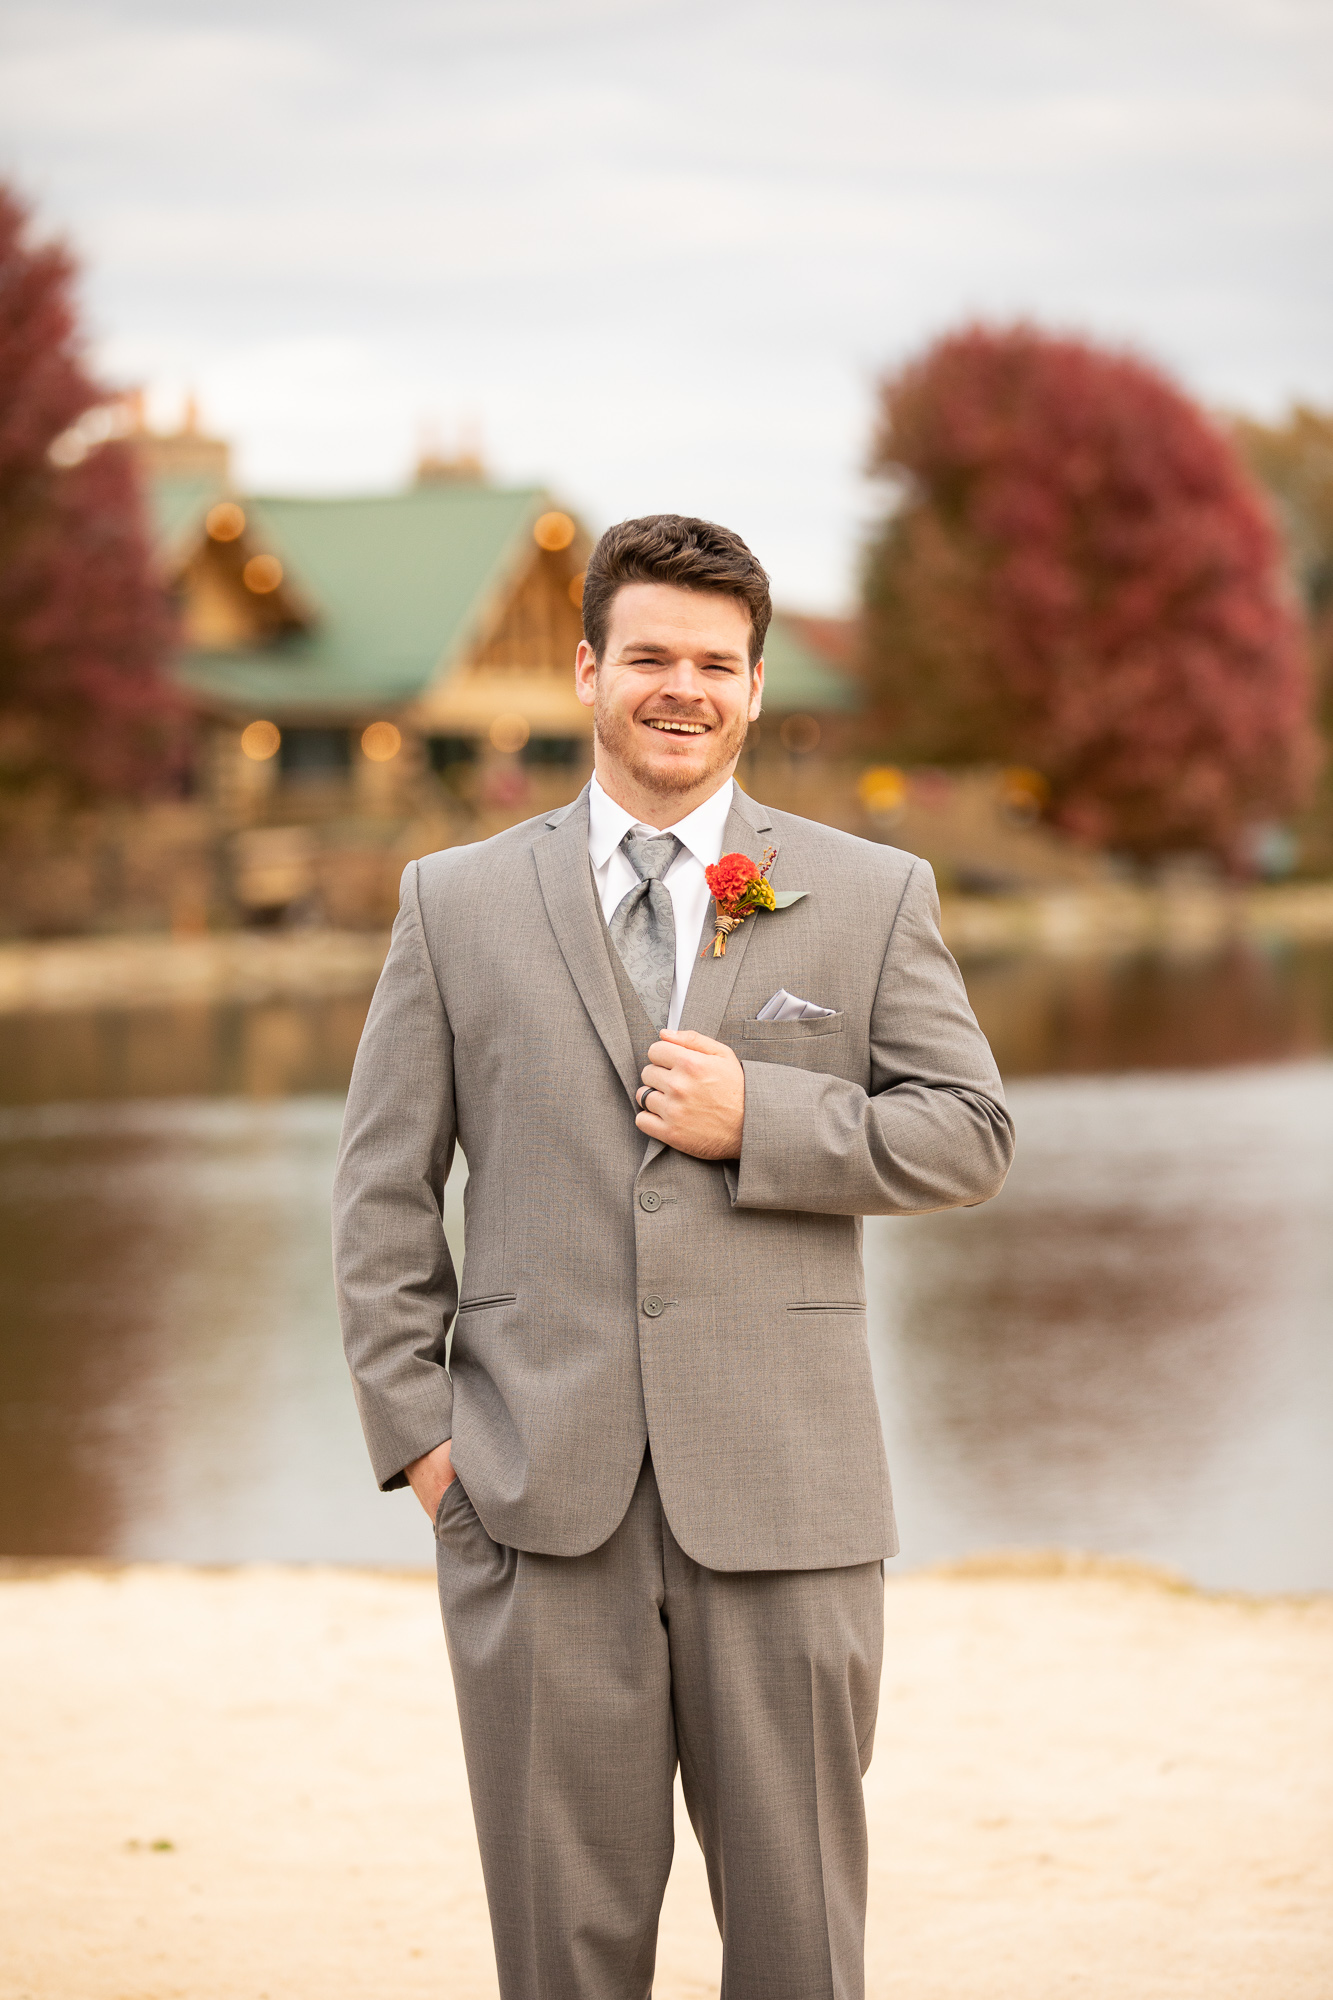 Cable Creations suit at The Gathering Place wedding.